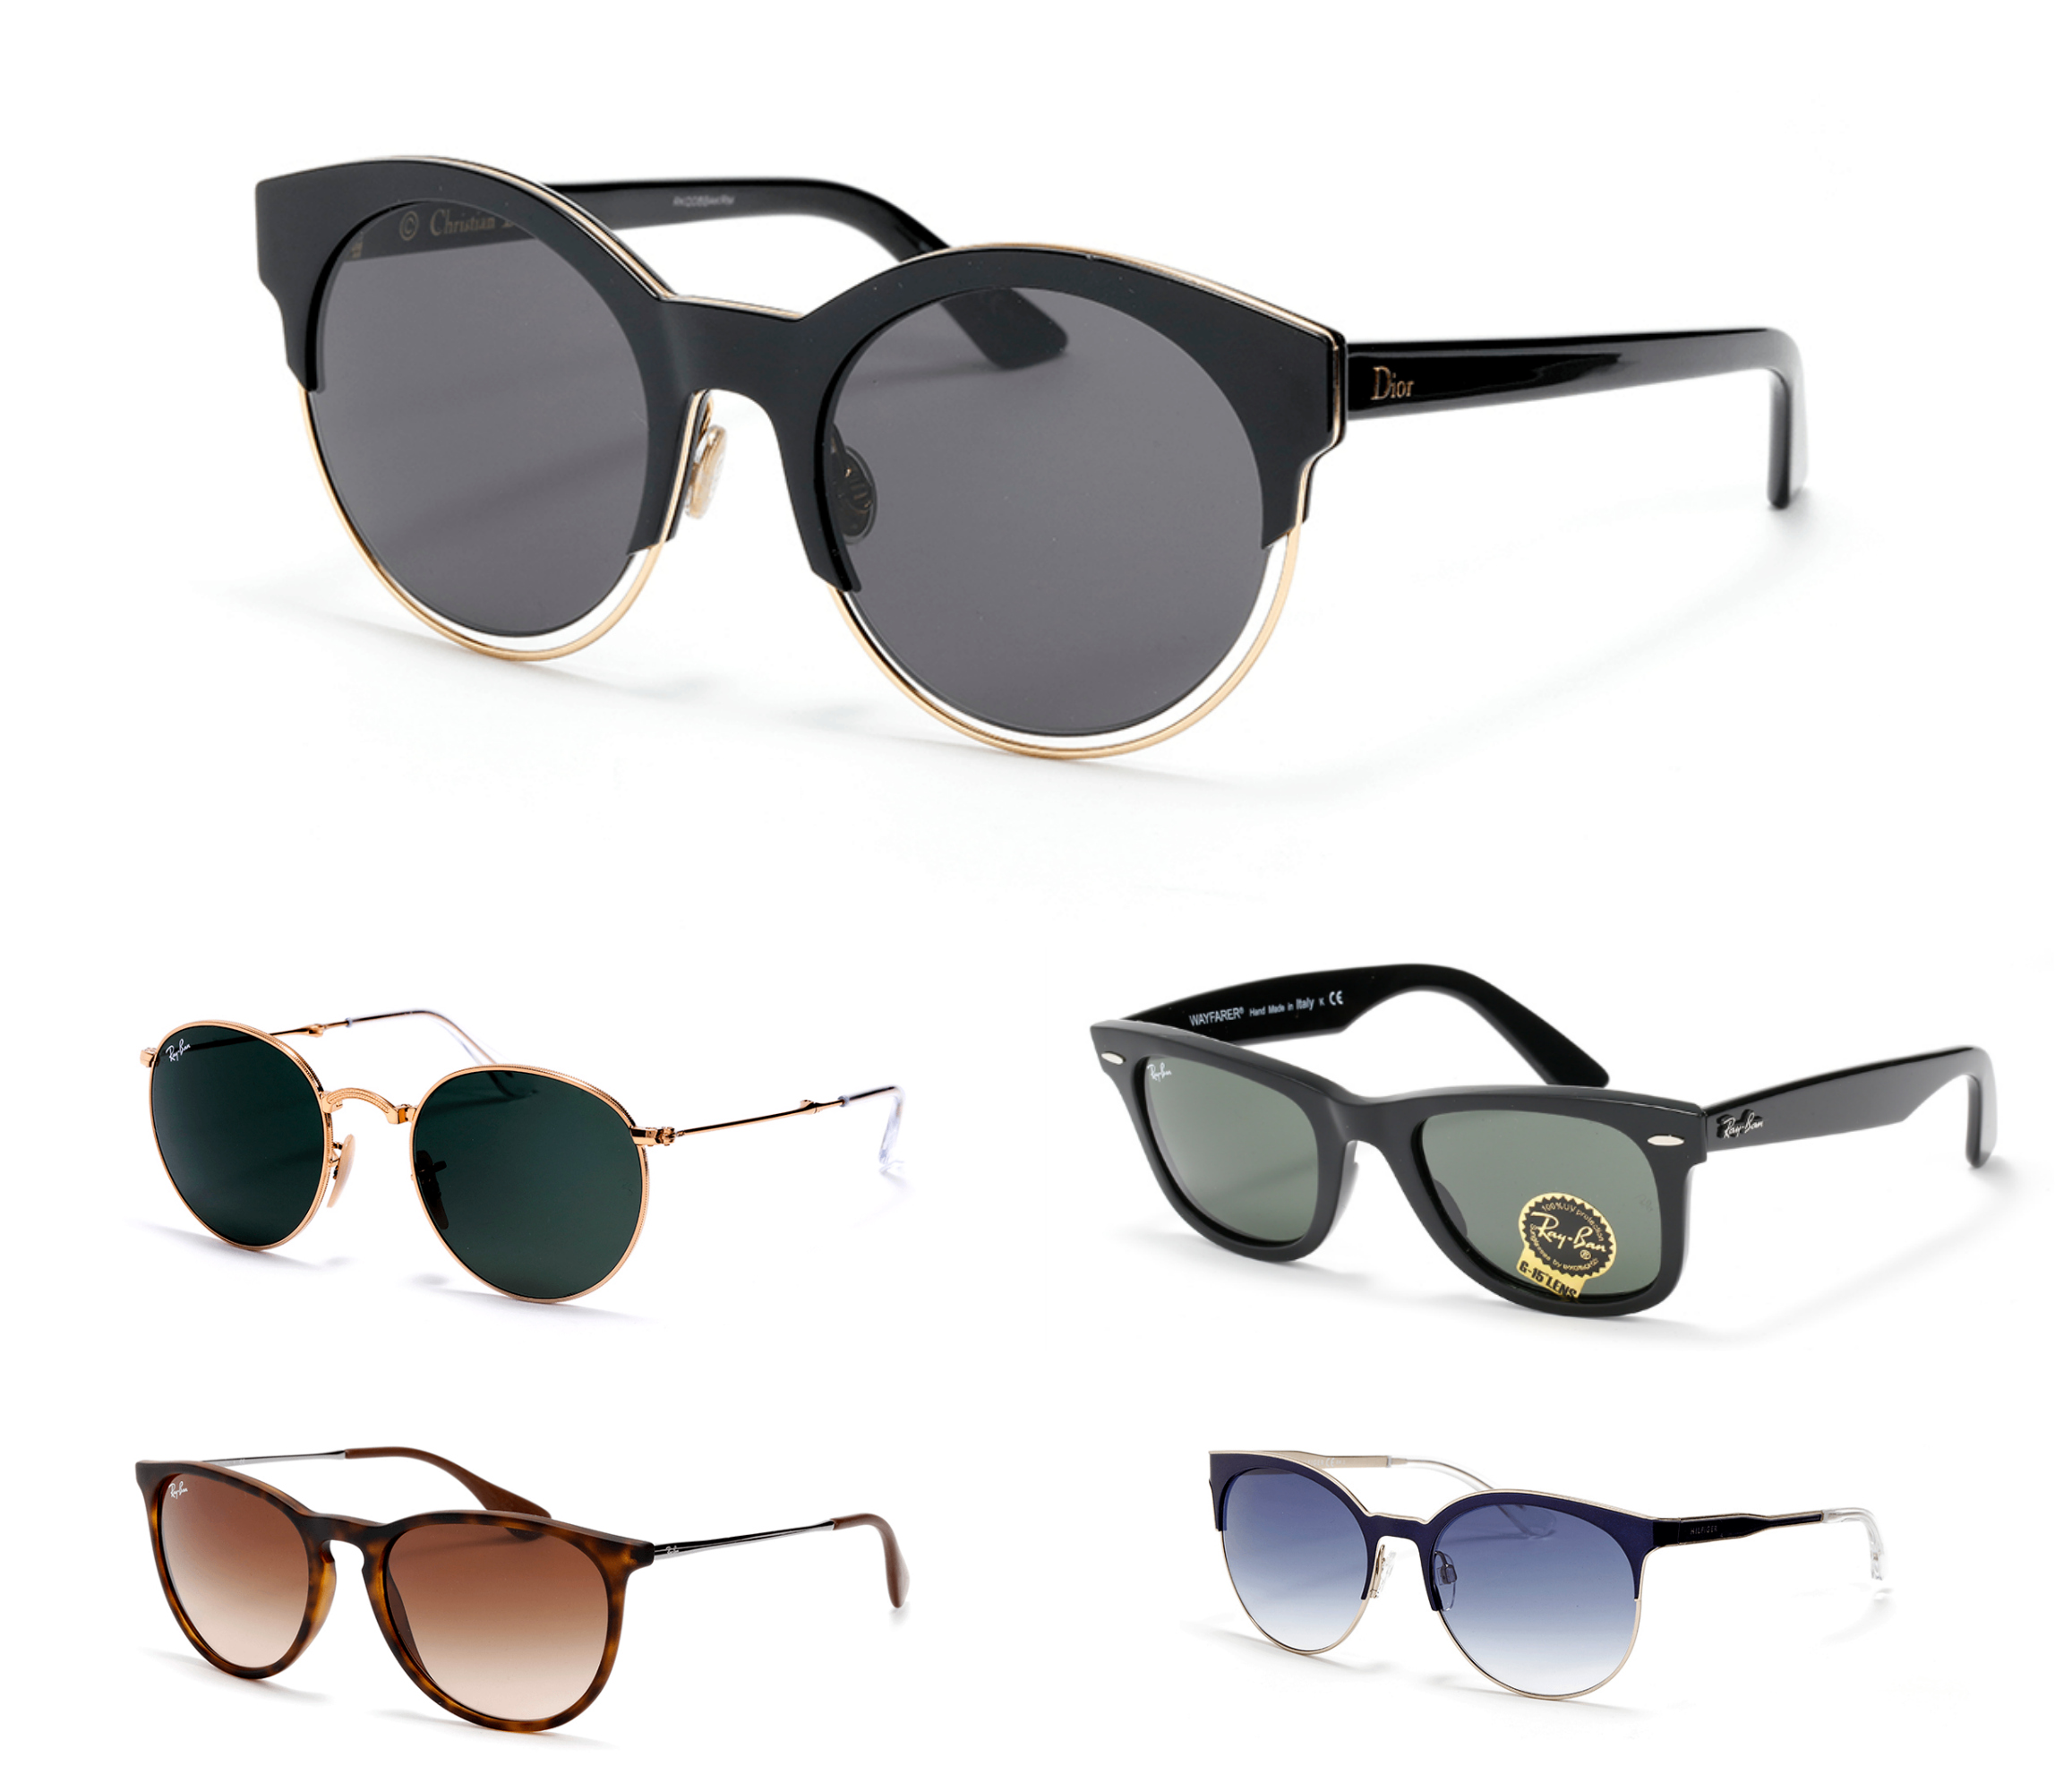 sunglass_collage